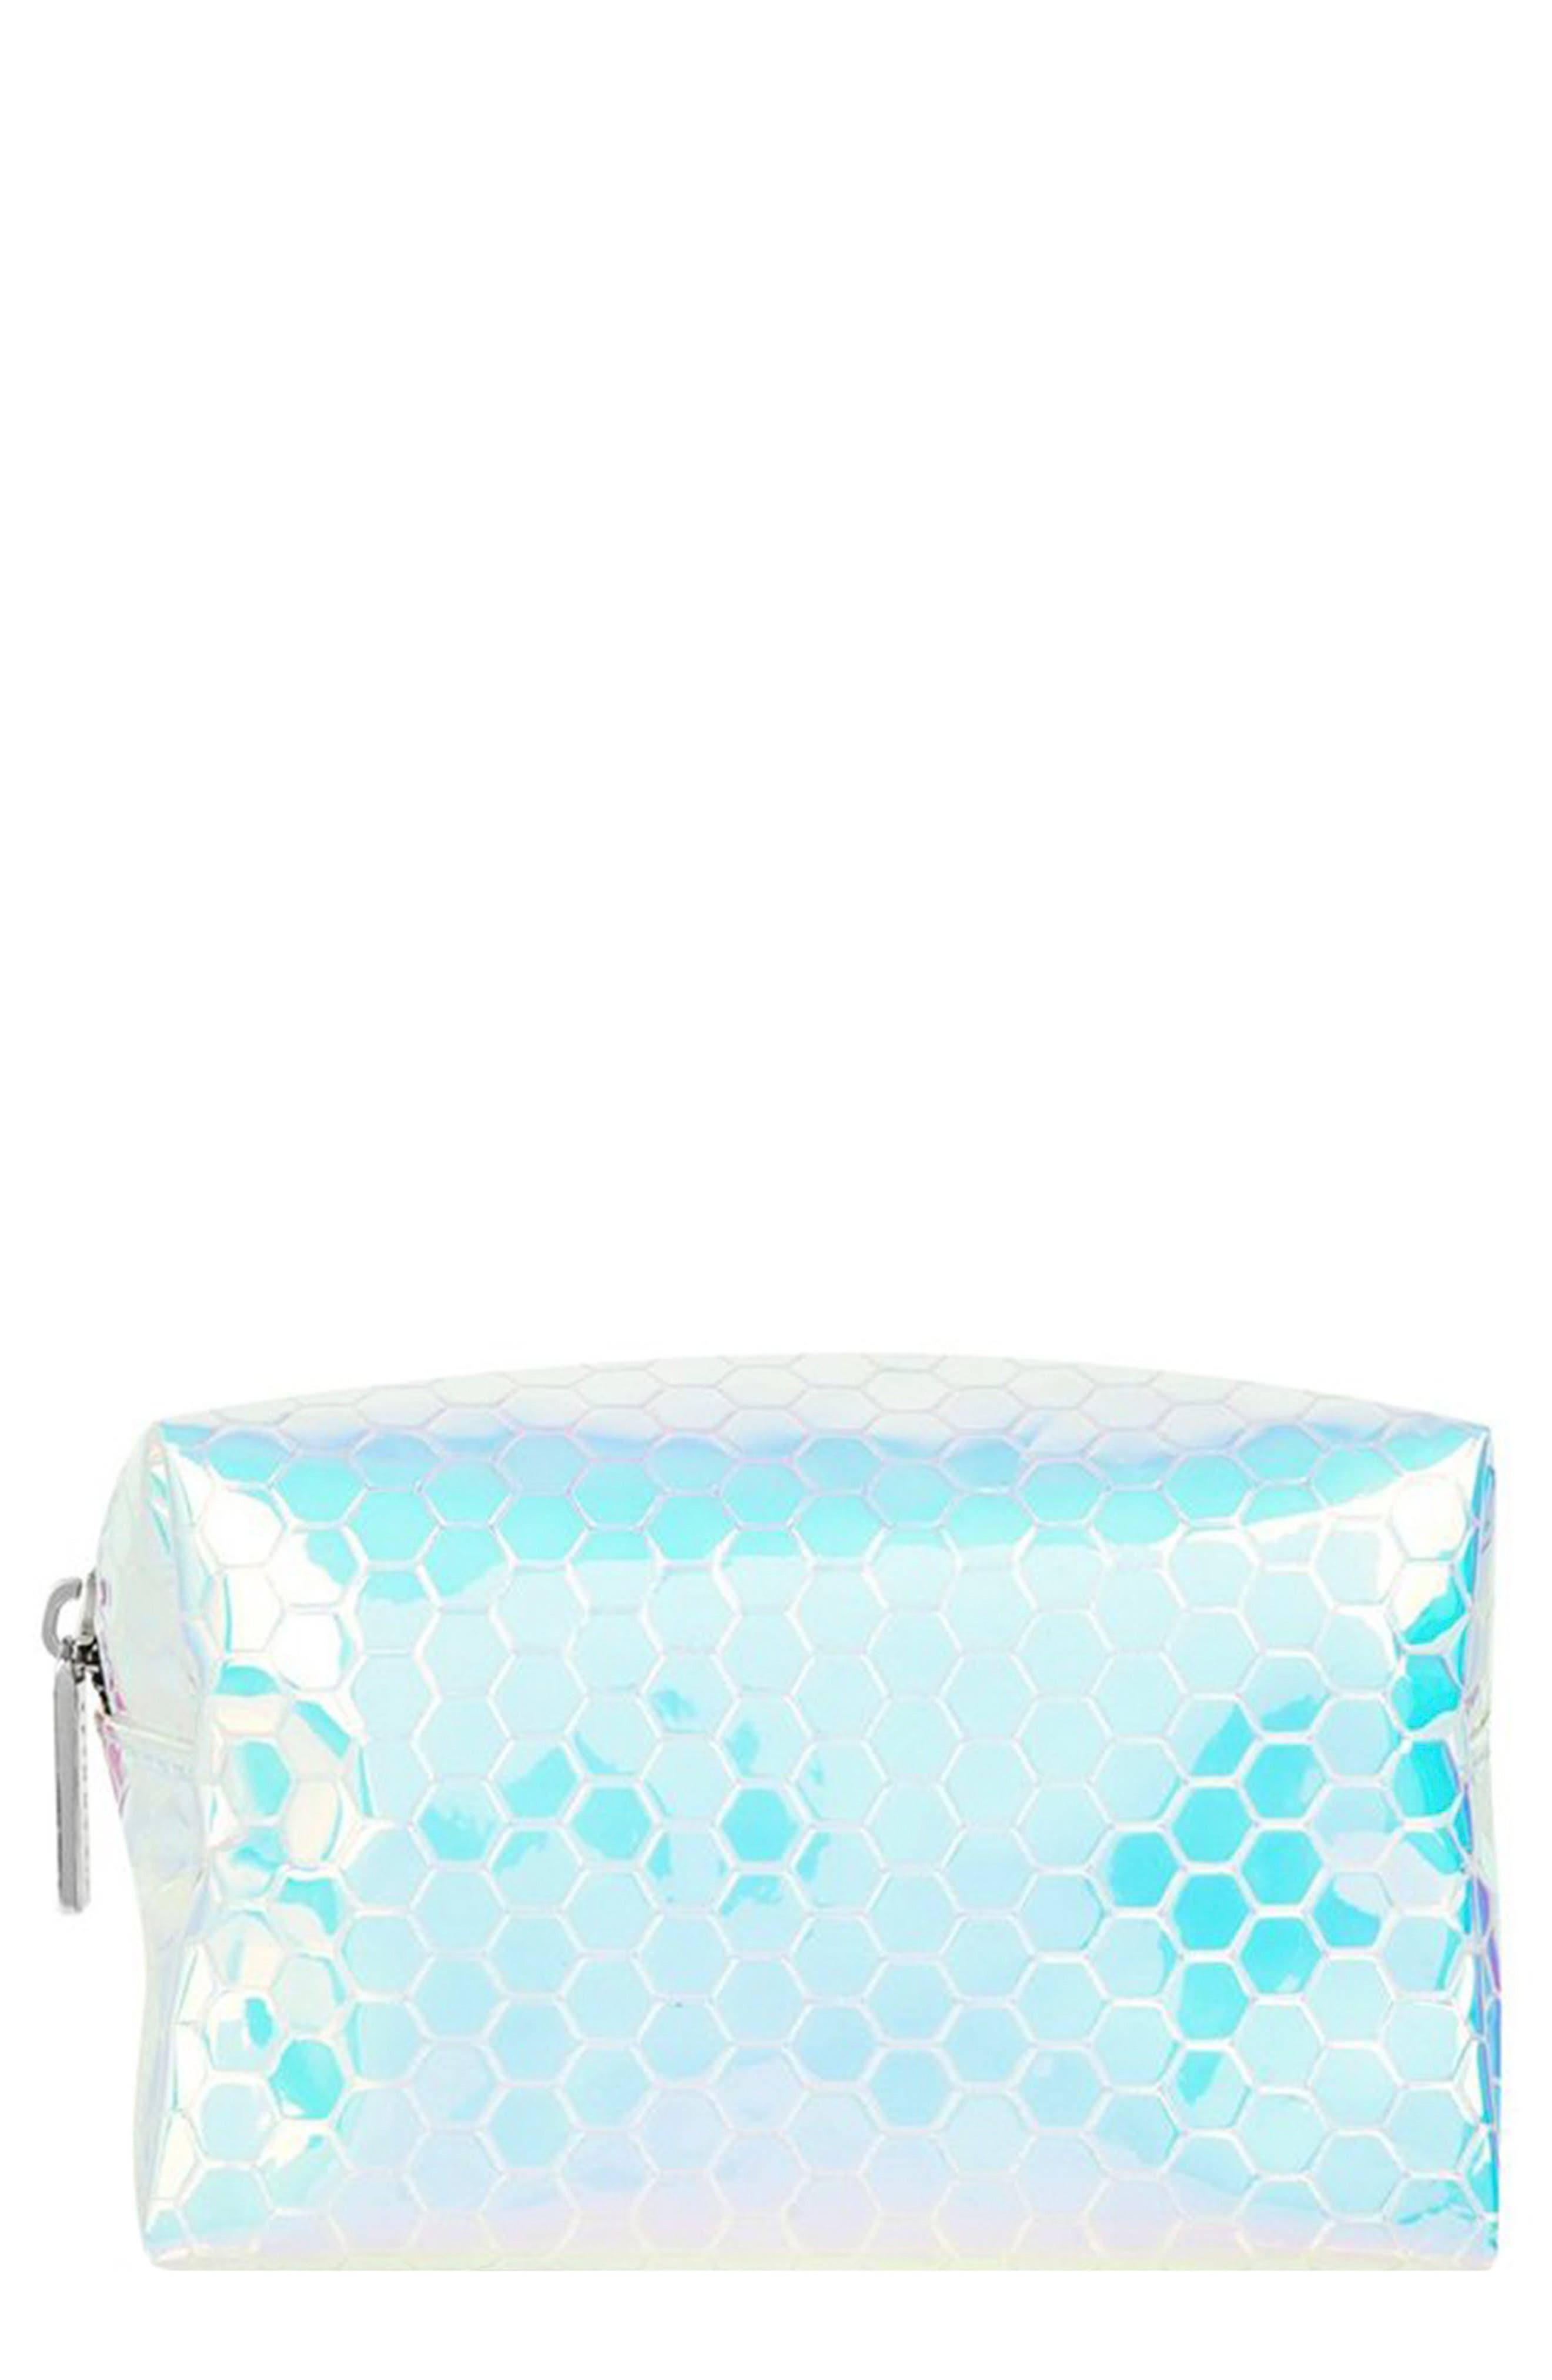 Skinny Dip Honeycomb Makeup Bag,                         Main,                         color, No Color